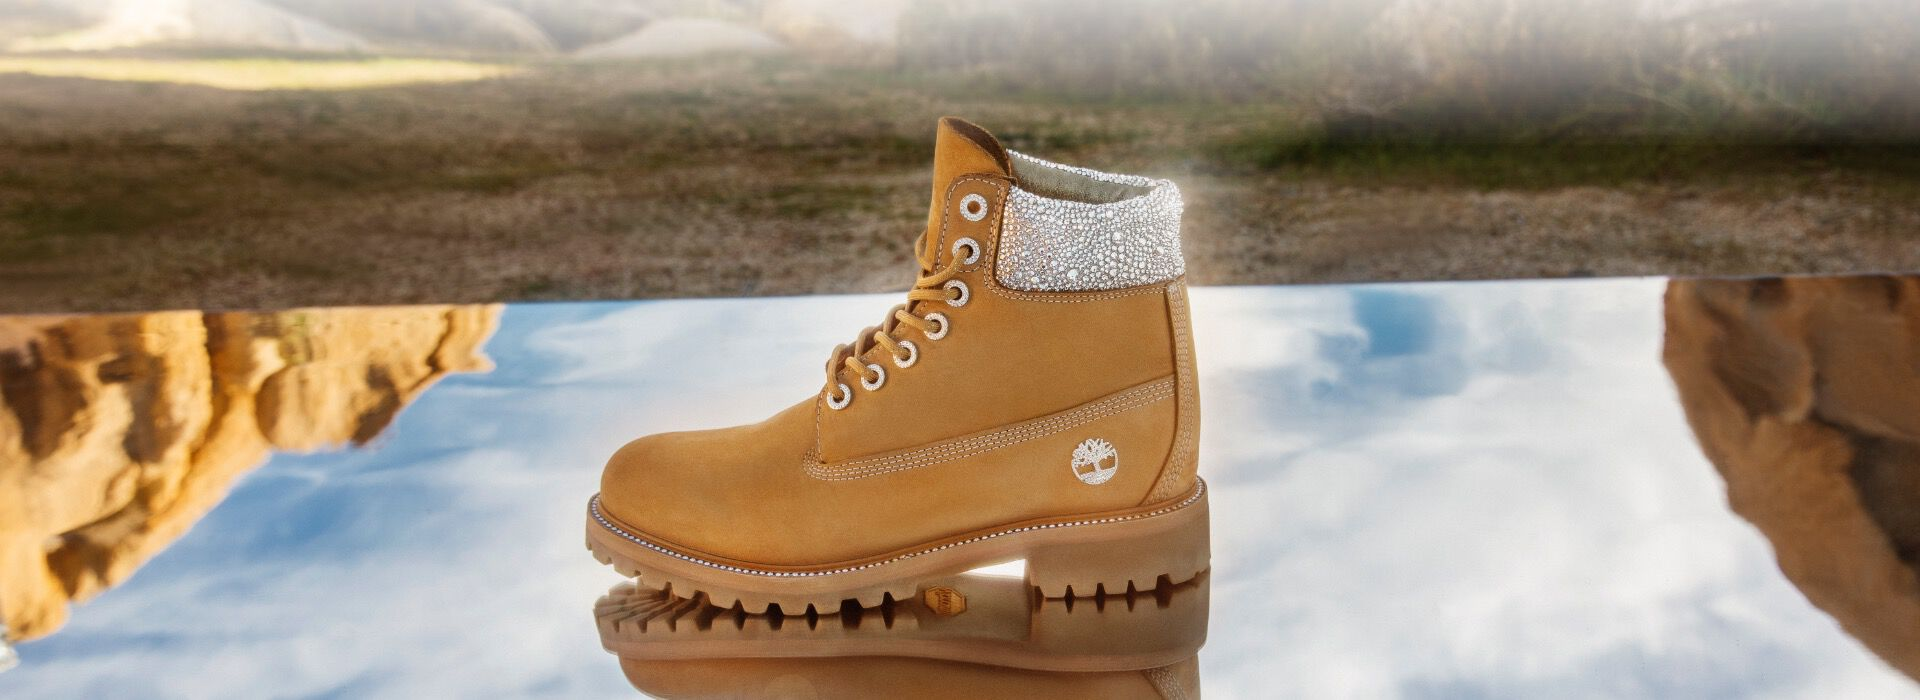 Shop the Jimmy Choo x Timberland Collection